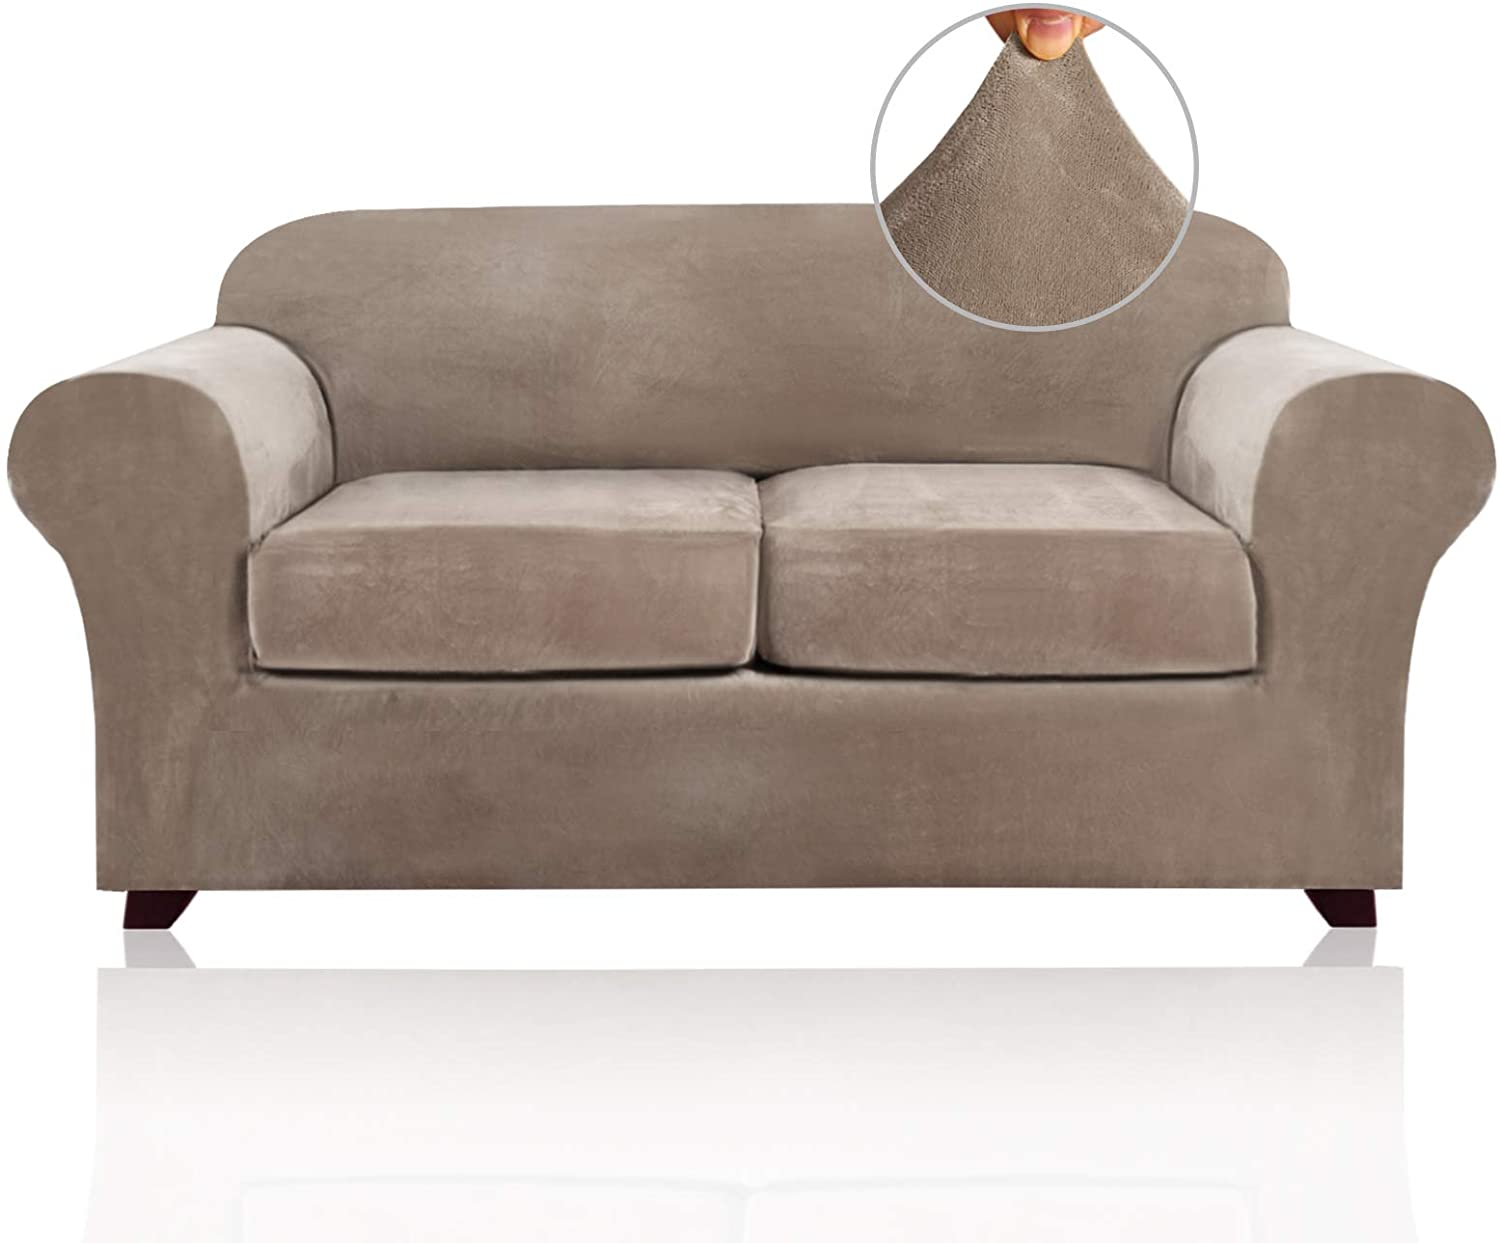 61f ql8cJLL. AC SL1500 - Best Slipcovers For Leather Sofas and Couches (Non-Slip) - ChairPicks